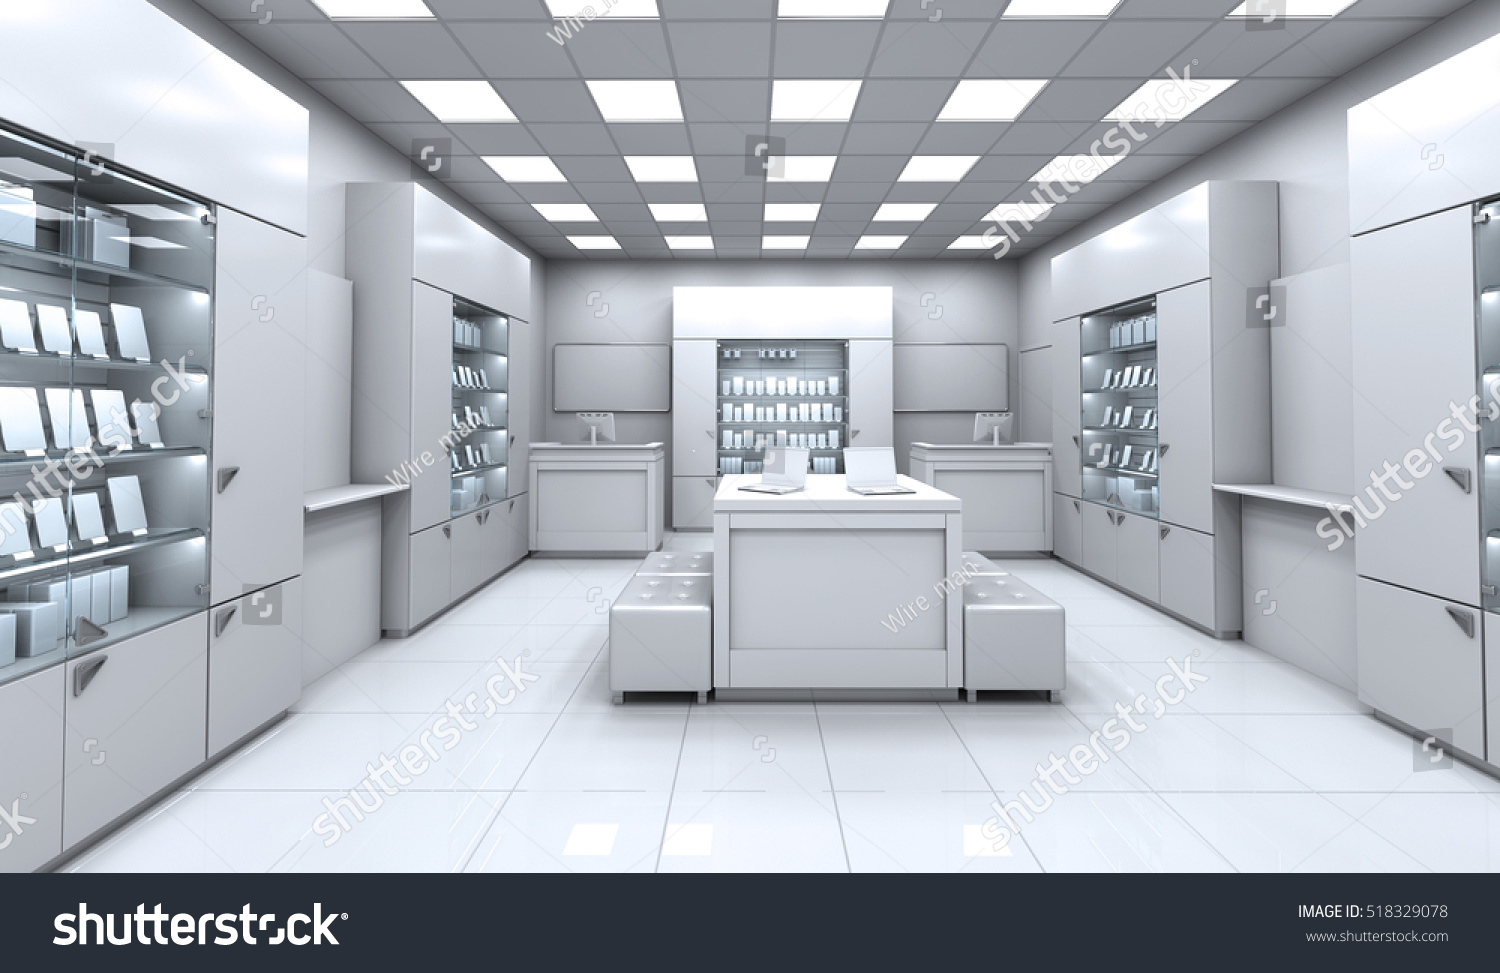 Interior Mobile Shop 3 D Illustration Stock Illustration 518329078